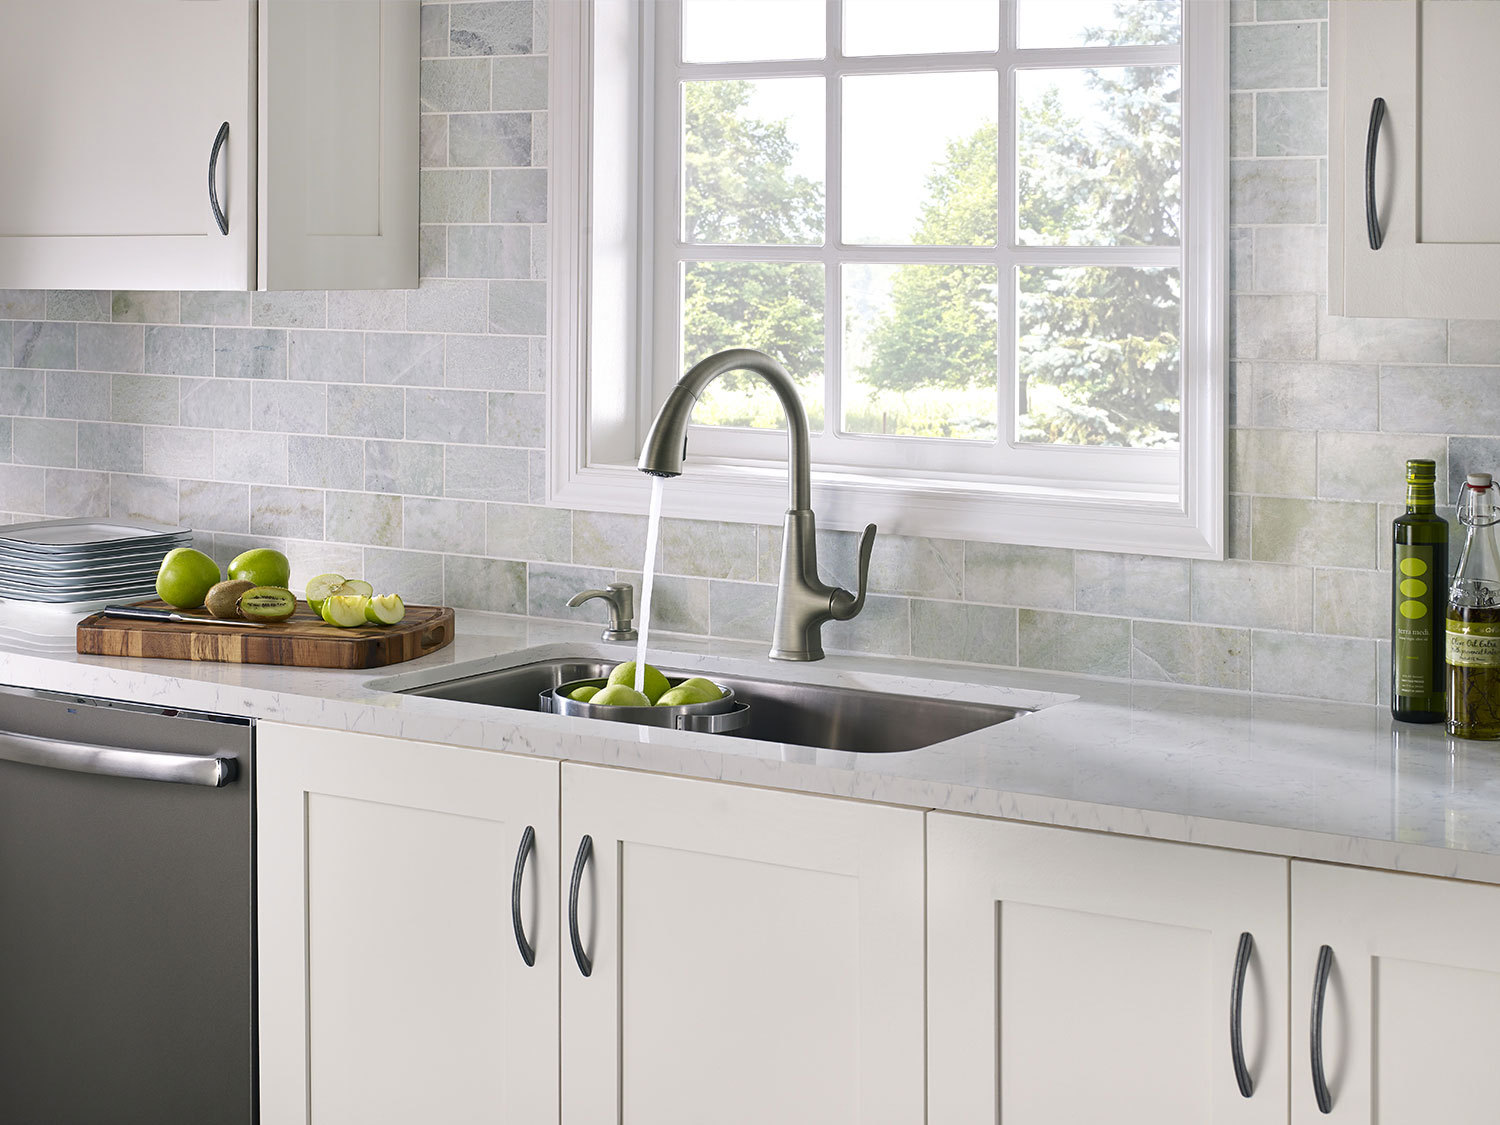 Uncategorized Kitchen Appliance Sweepstakes compliment a friend and win slate kitchen business wire in the 2014 dream sweepstakes faucets ge appliances give consumers